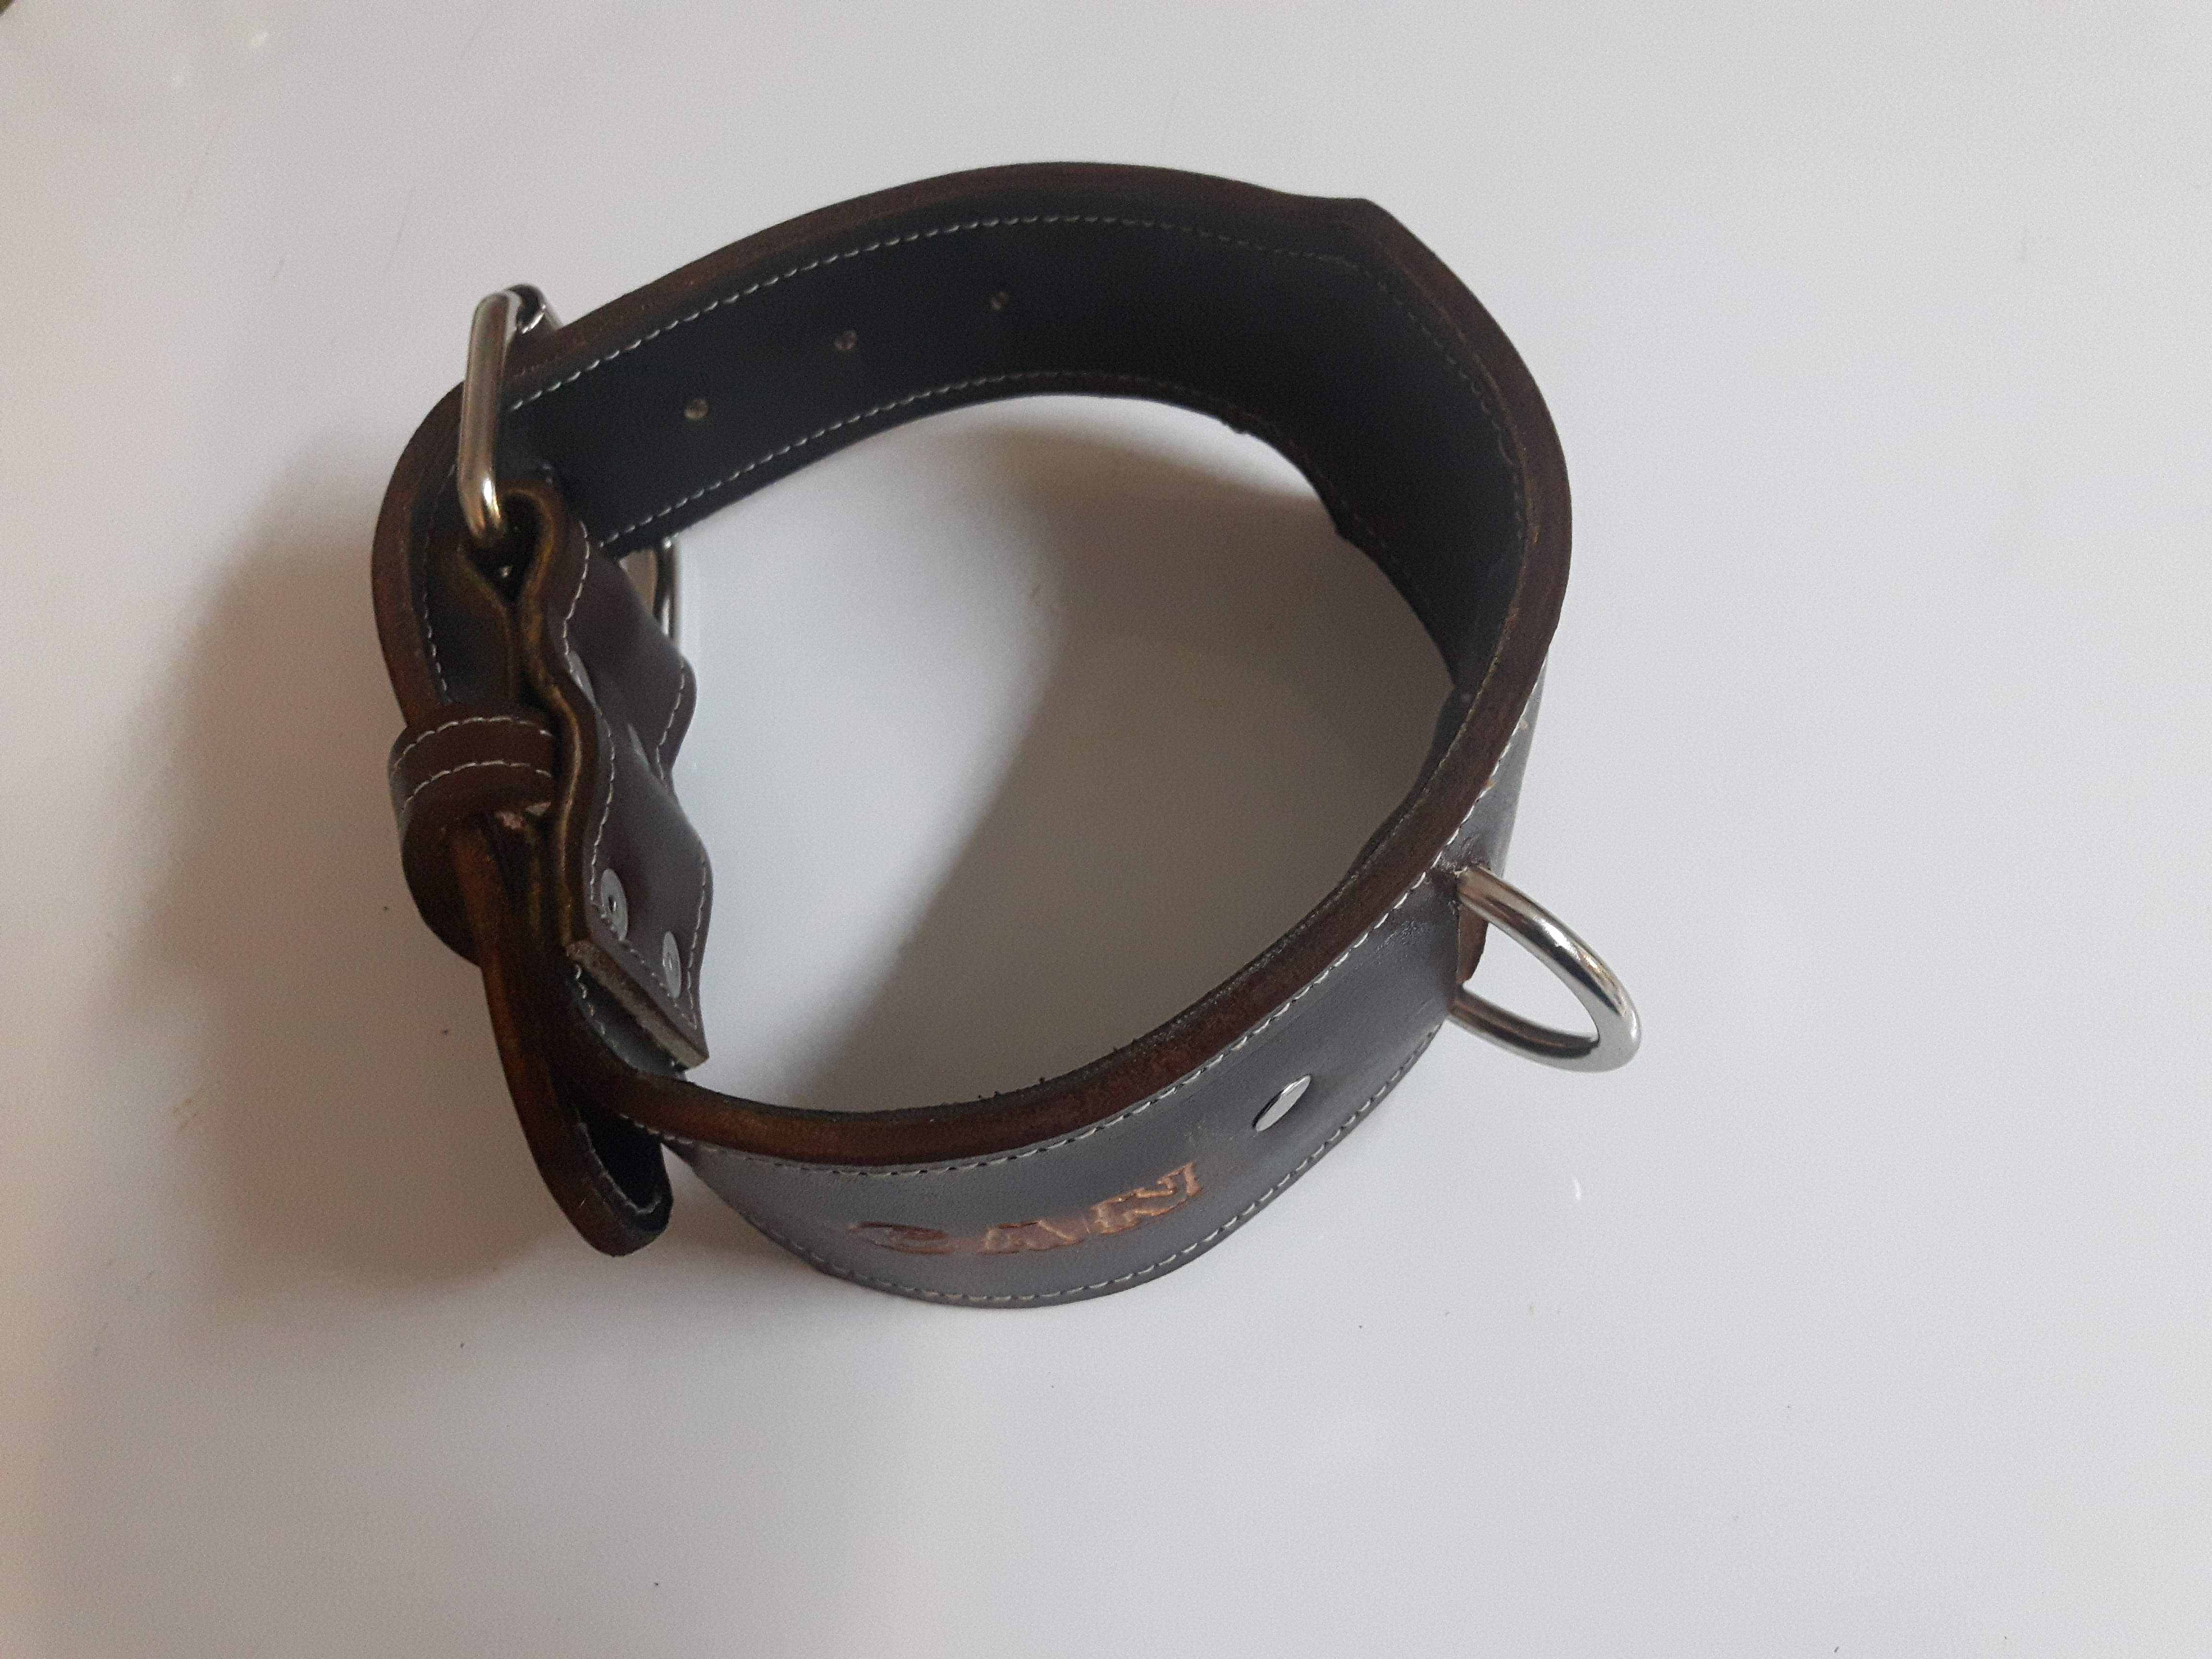 Leather Dog Collars Canada Enlight Designs Request